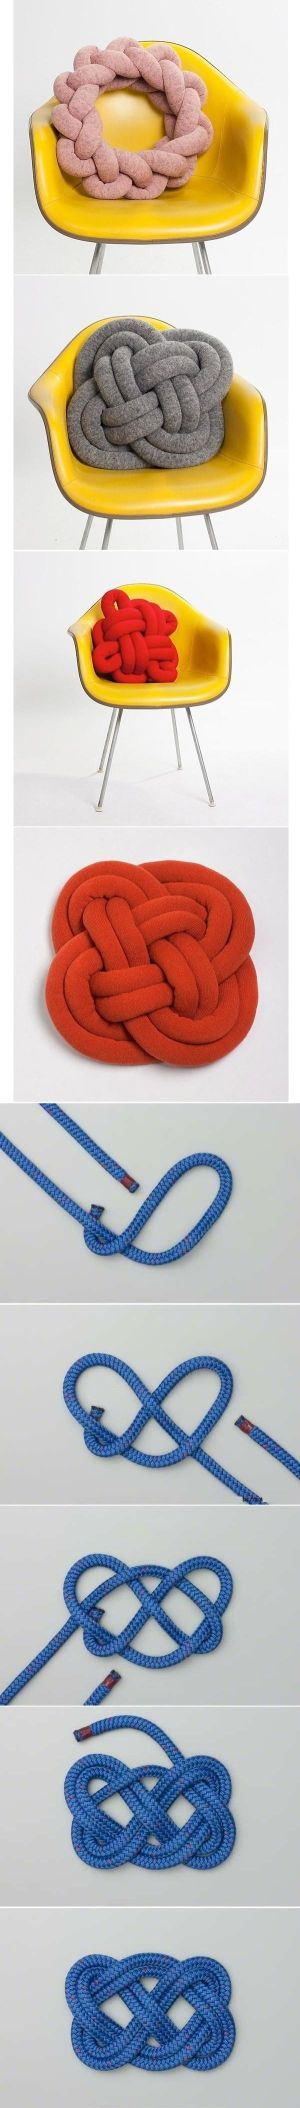 DIY Knot Pillow DIY Knot Pillow by diyforever